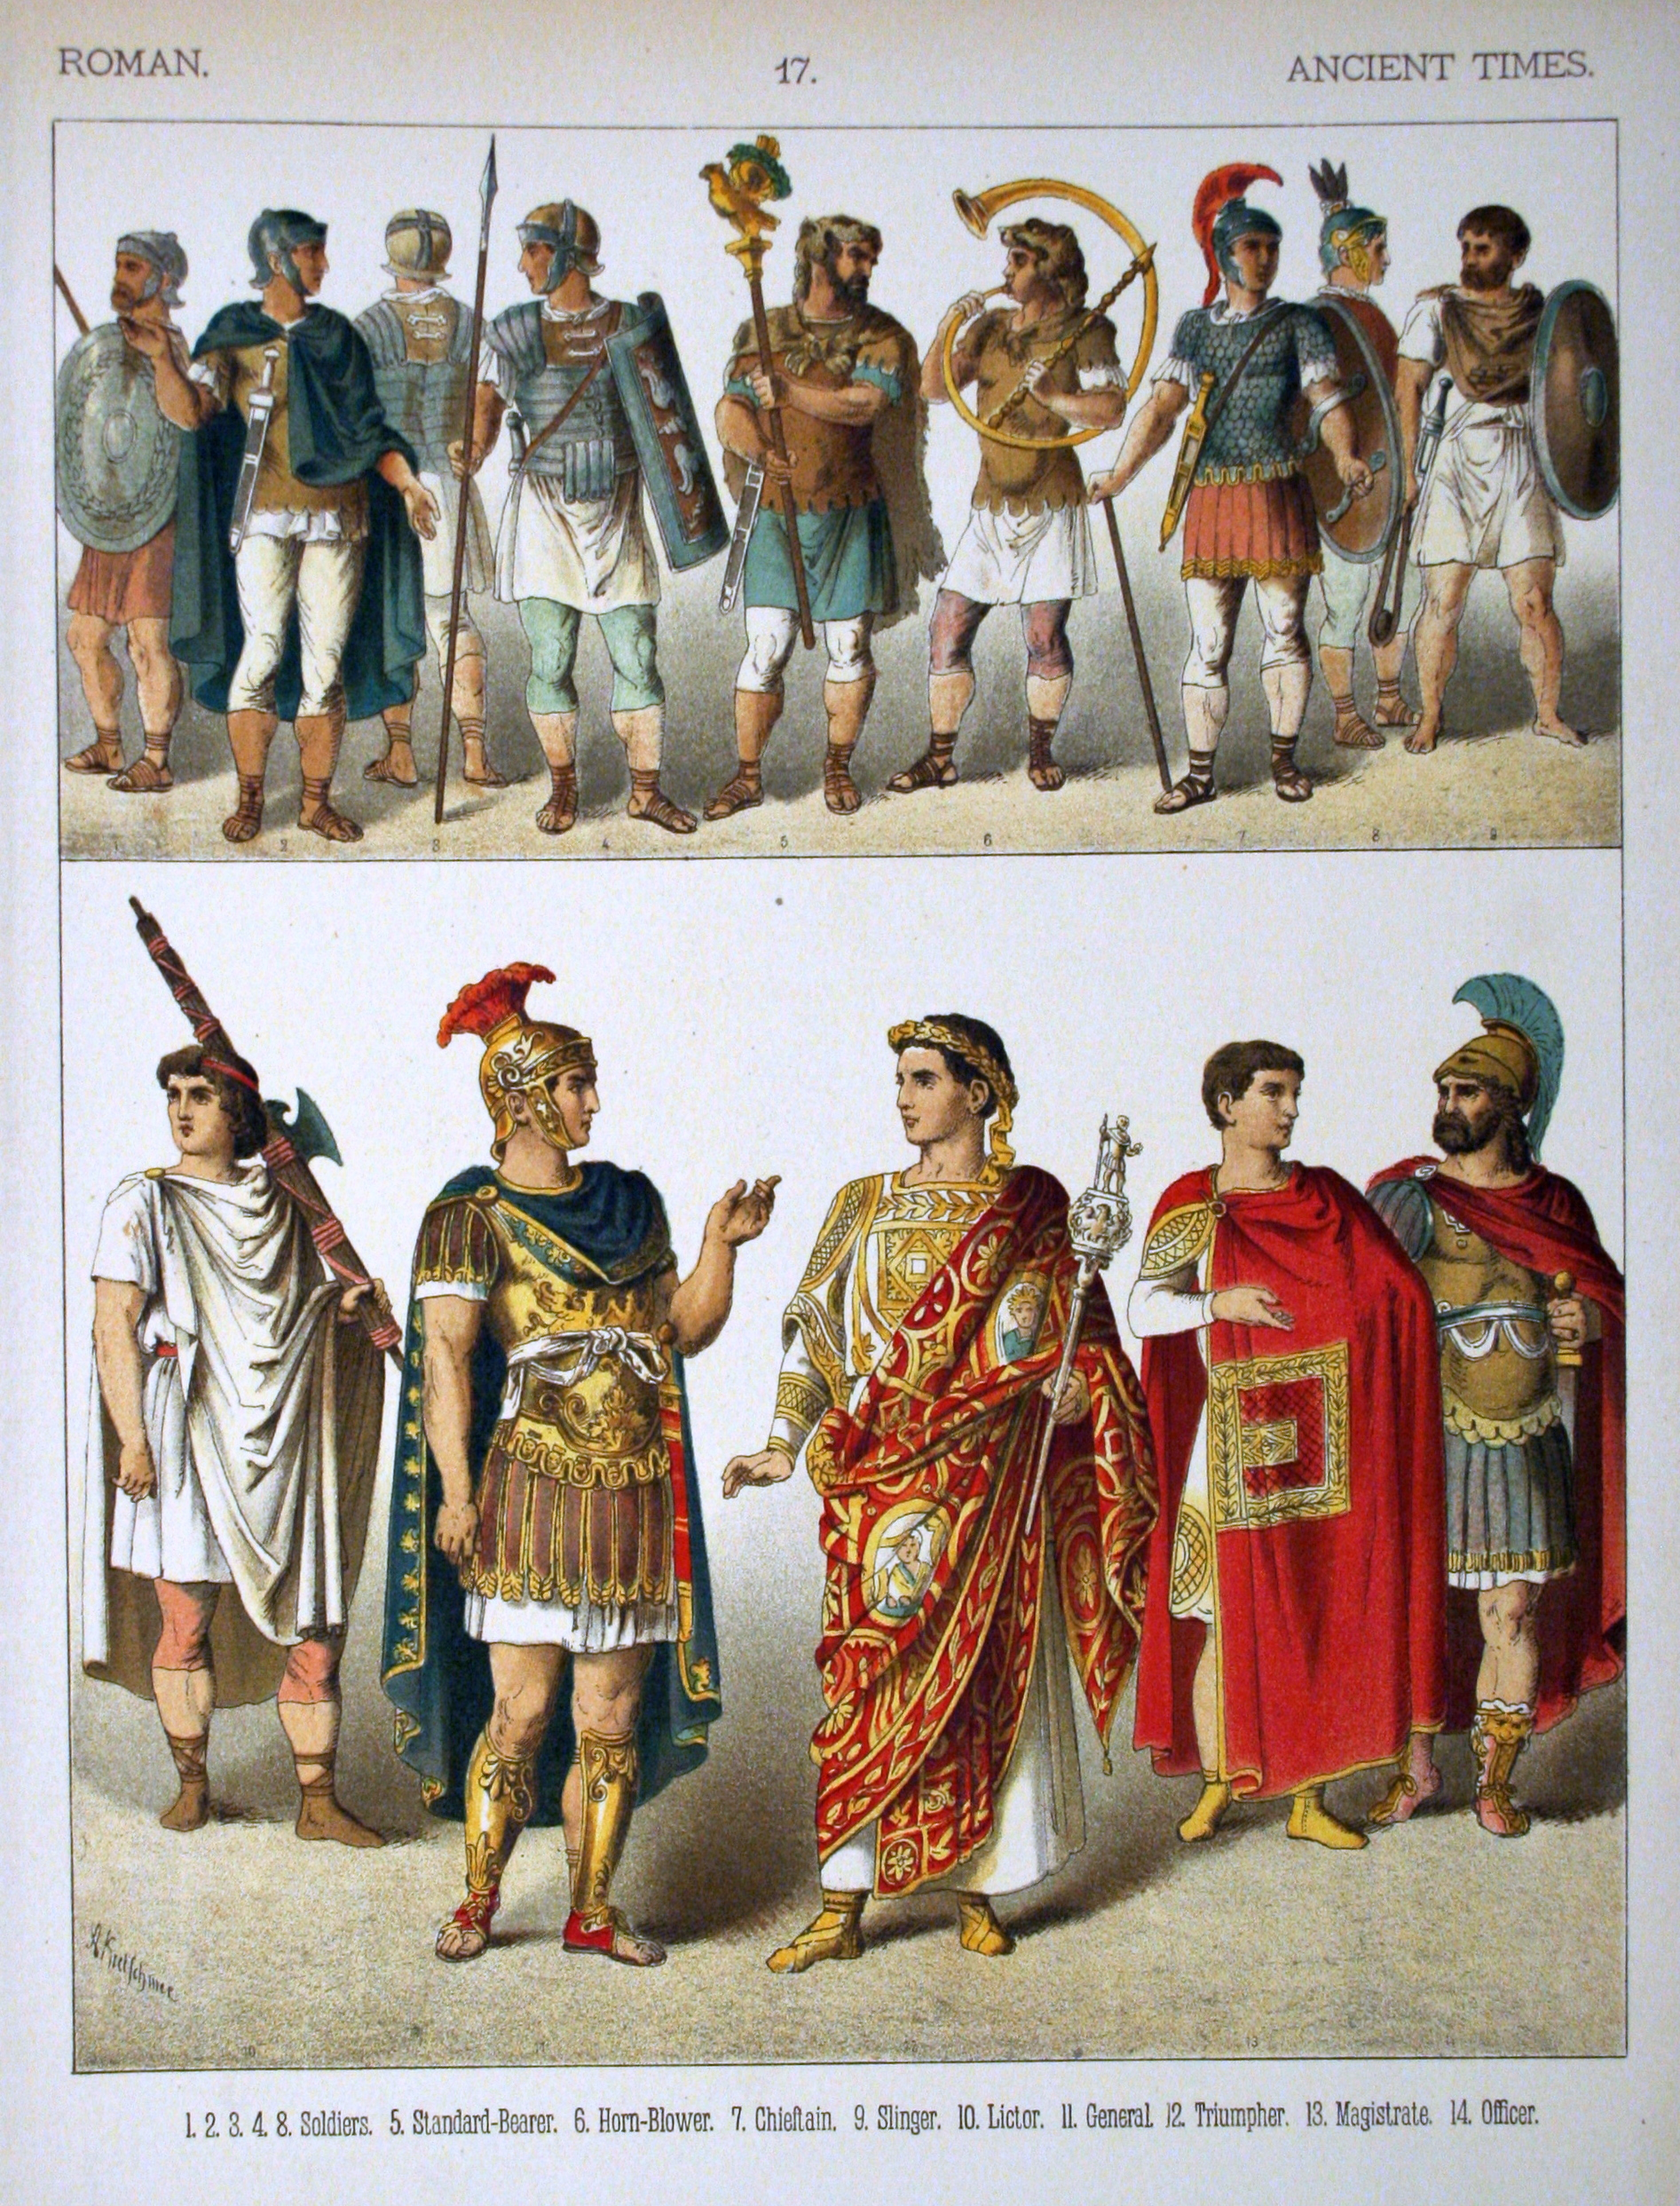 File:Ancient Times, Roman. - 017 - Costumes of All Nations (1882).JPG